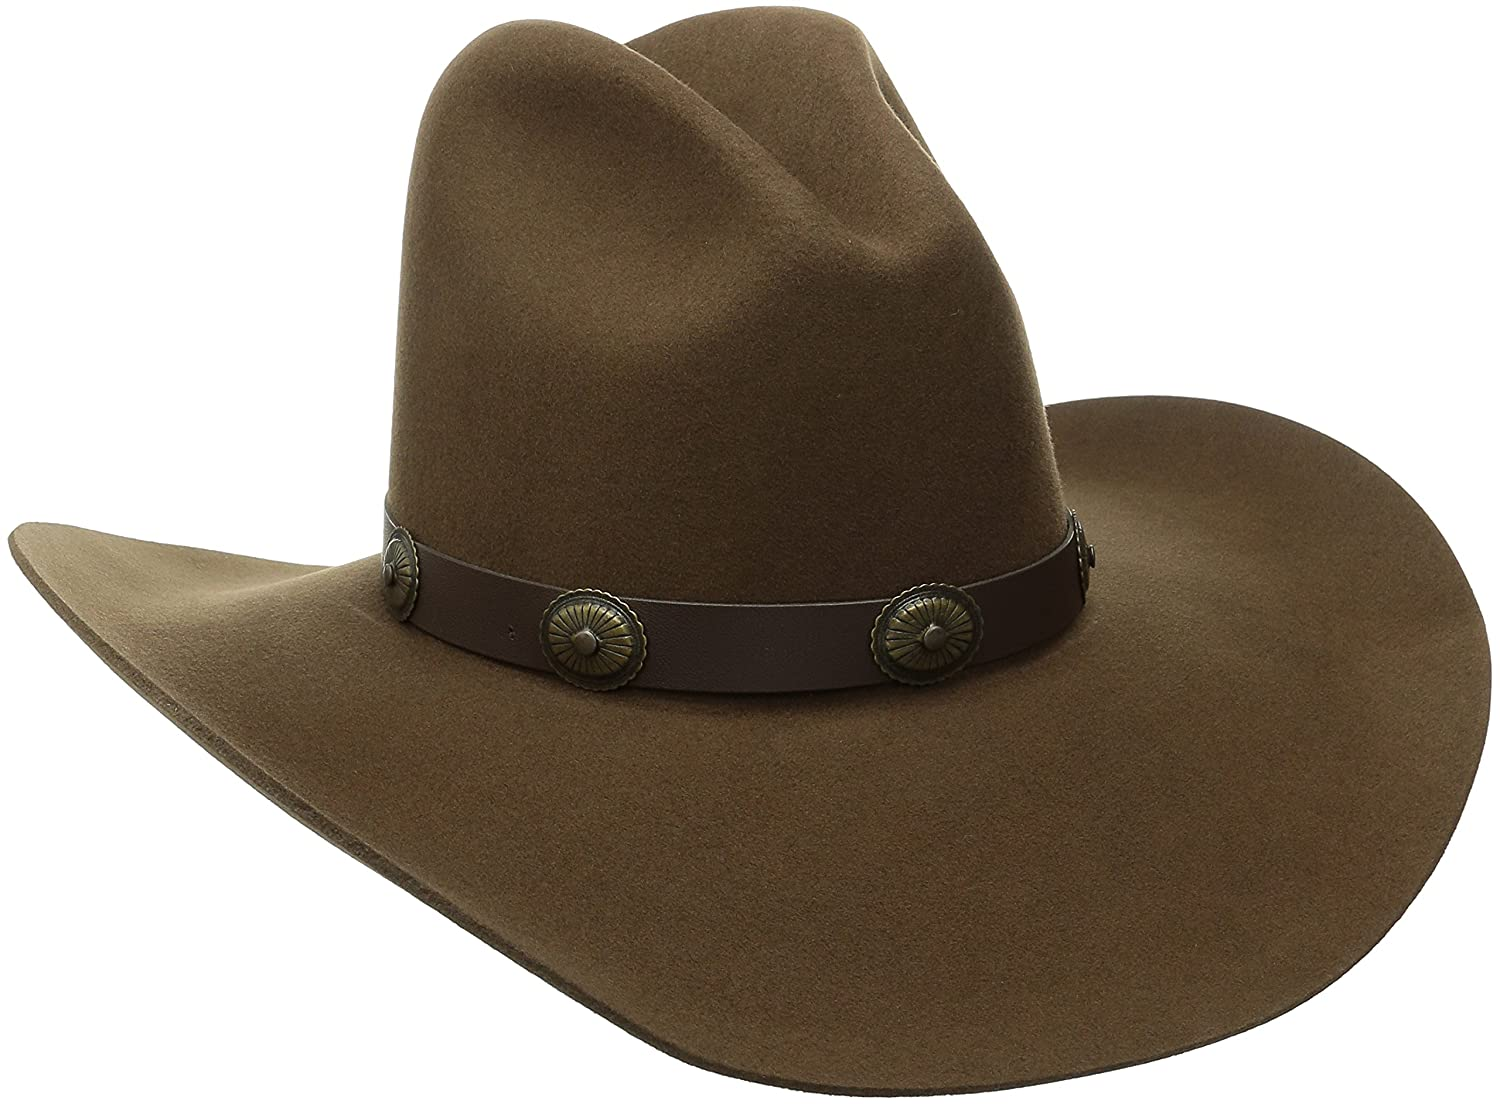 ba51383c1d71bd Bailey of Hollywood Western Men's Wool Felt Tombstone Hat at Amazon Men's  Clothing store: